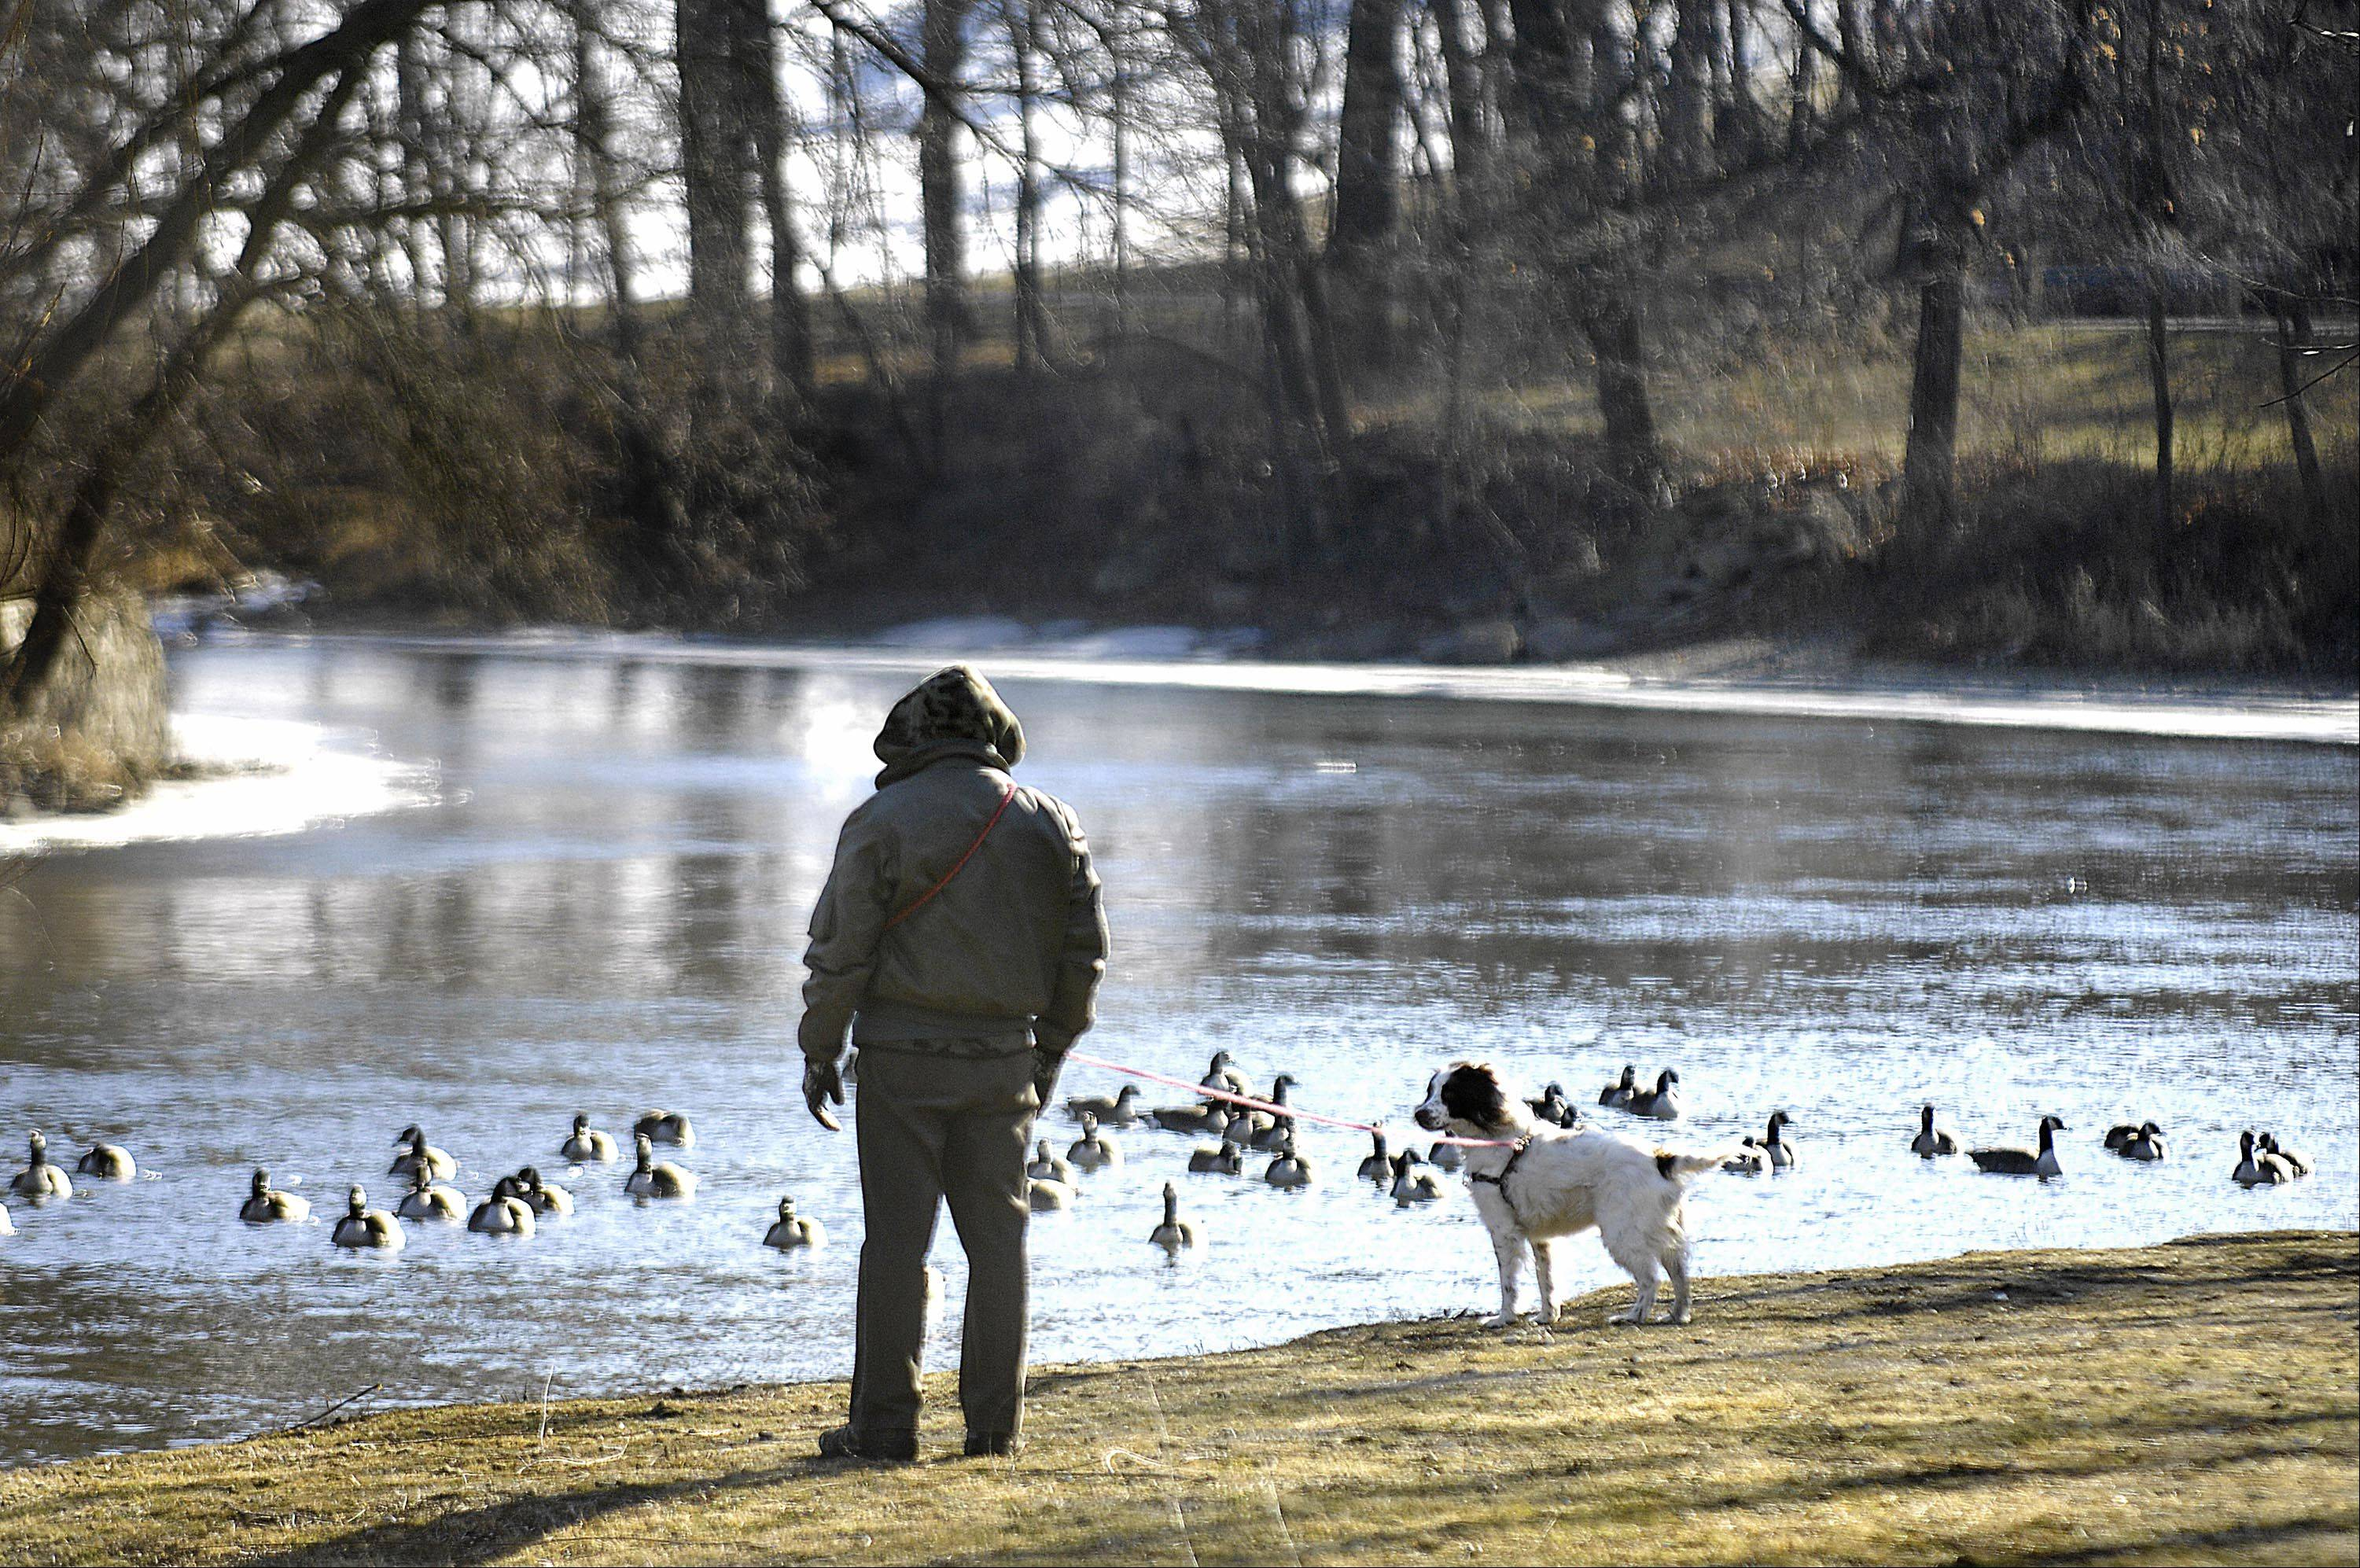 Jim Loftin and his bird dog Bella, a 2 1/2 year old English Springer Spaniel, watch geese on the Fox River in Algonquin Monday in single-digit temperatures. They live in Algonquin and came to the river near the water treatment plant on Arbor Lane.